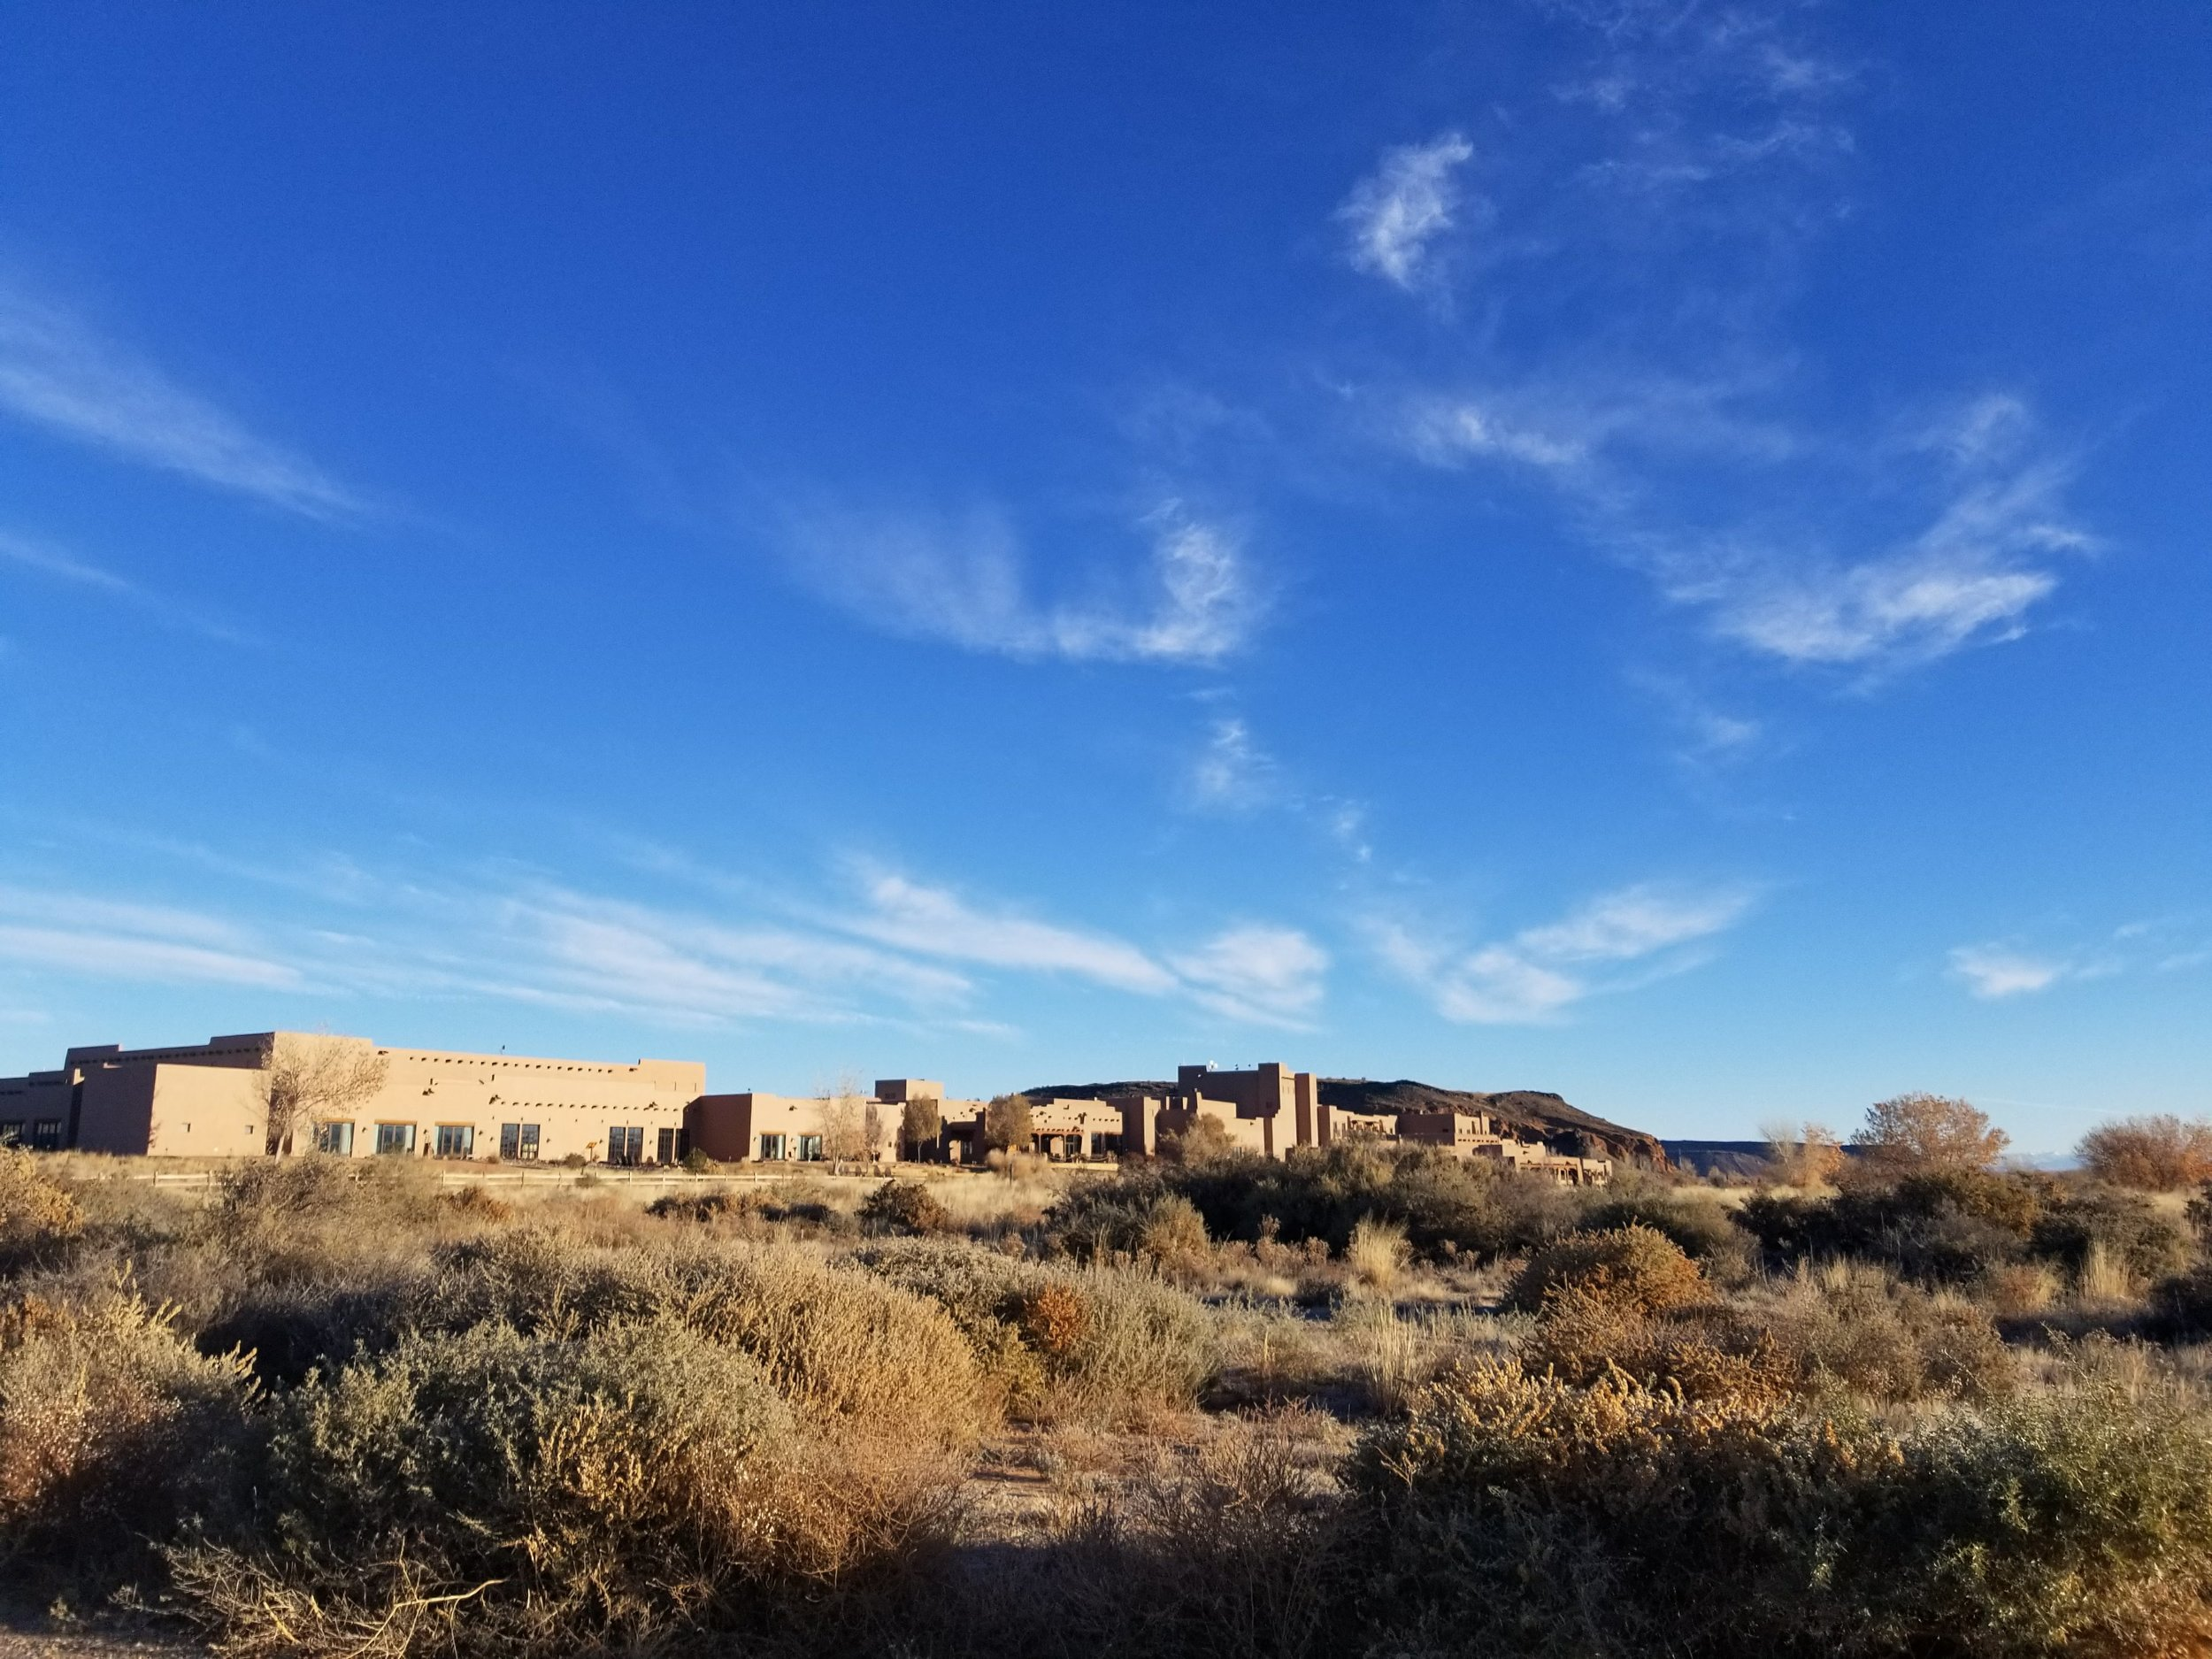 Hotel Tamaya is secluded and tailors every experience to the individual